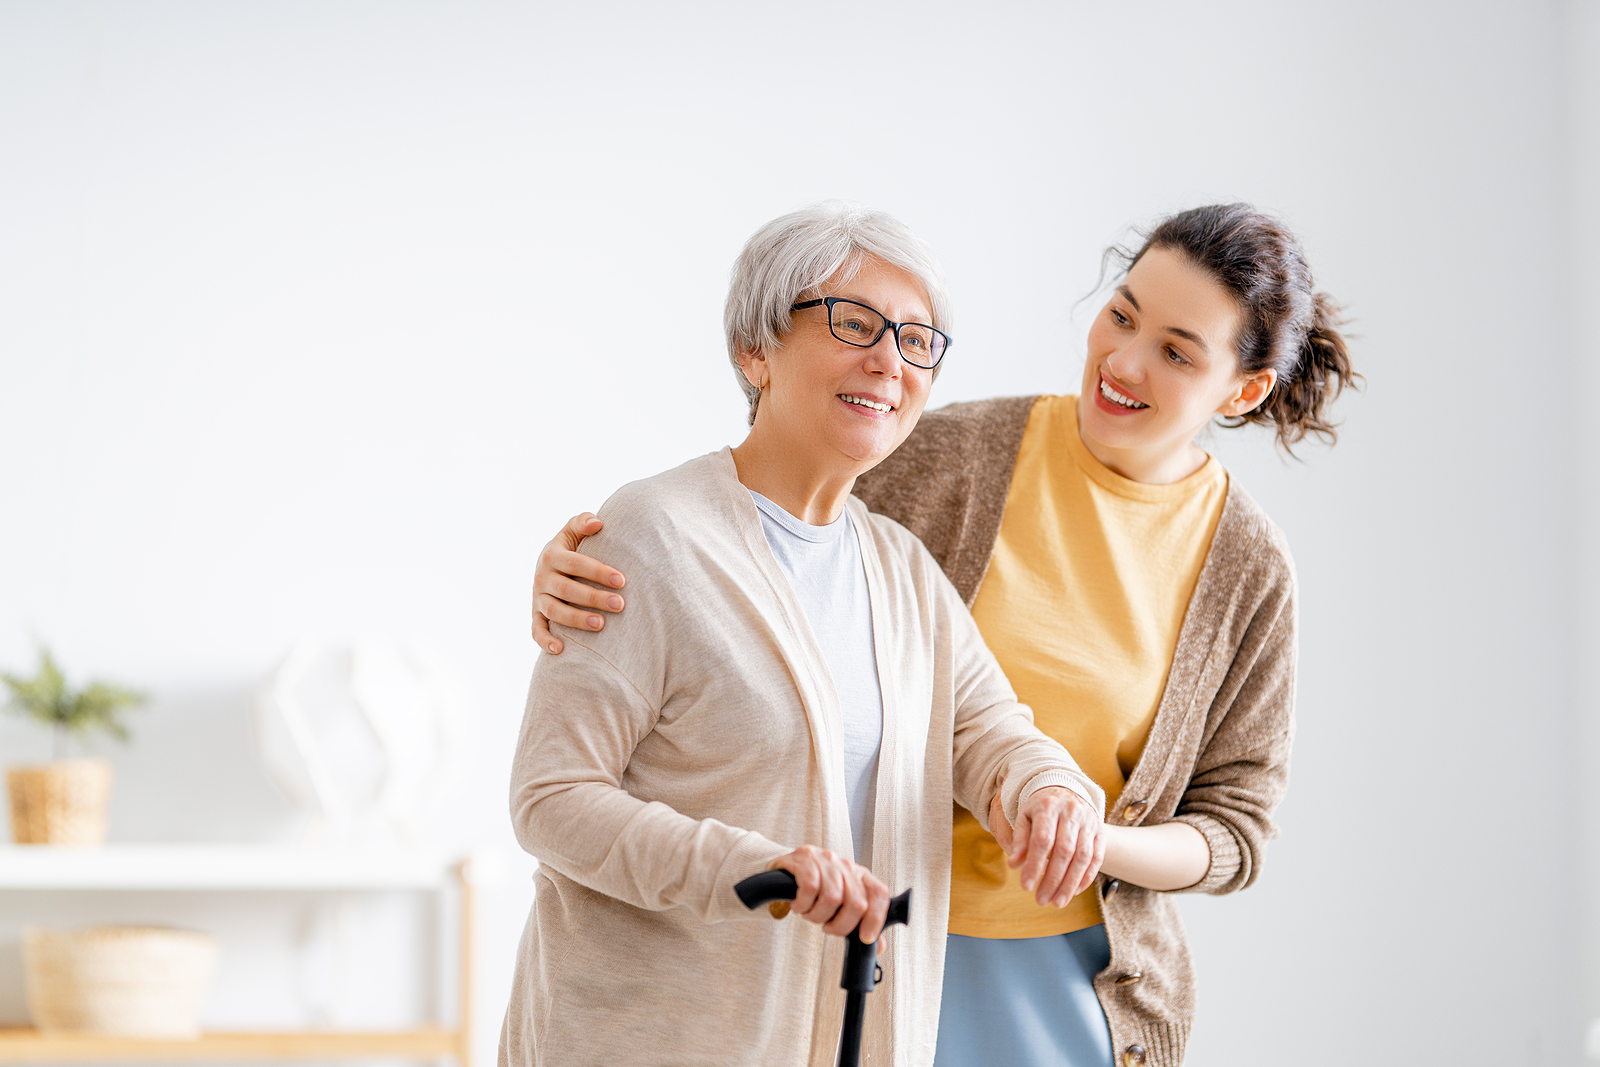 a friendly caregiver helping an elderly woman navigate her home safely